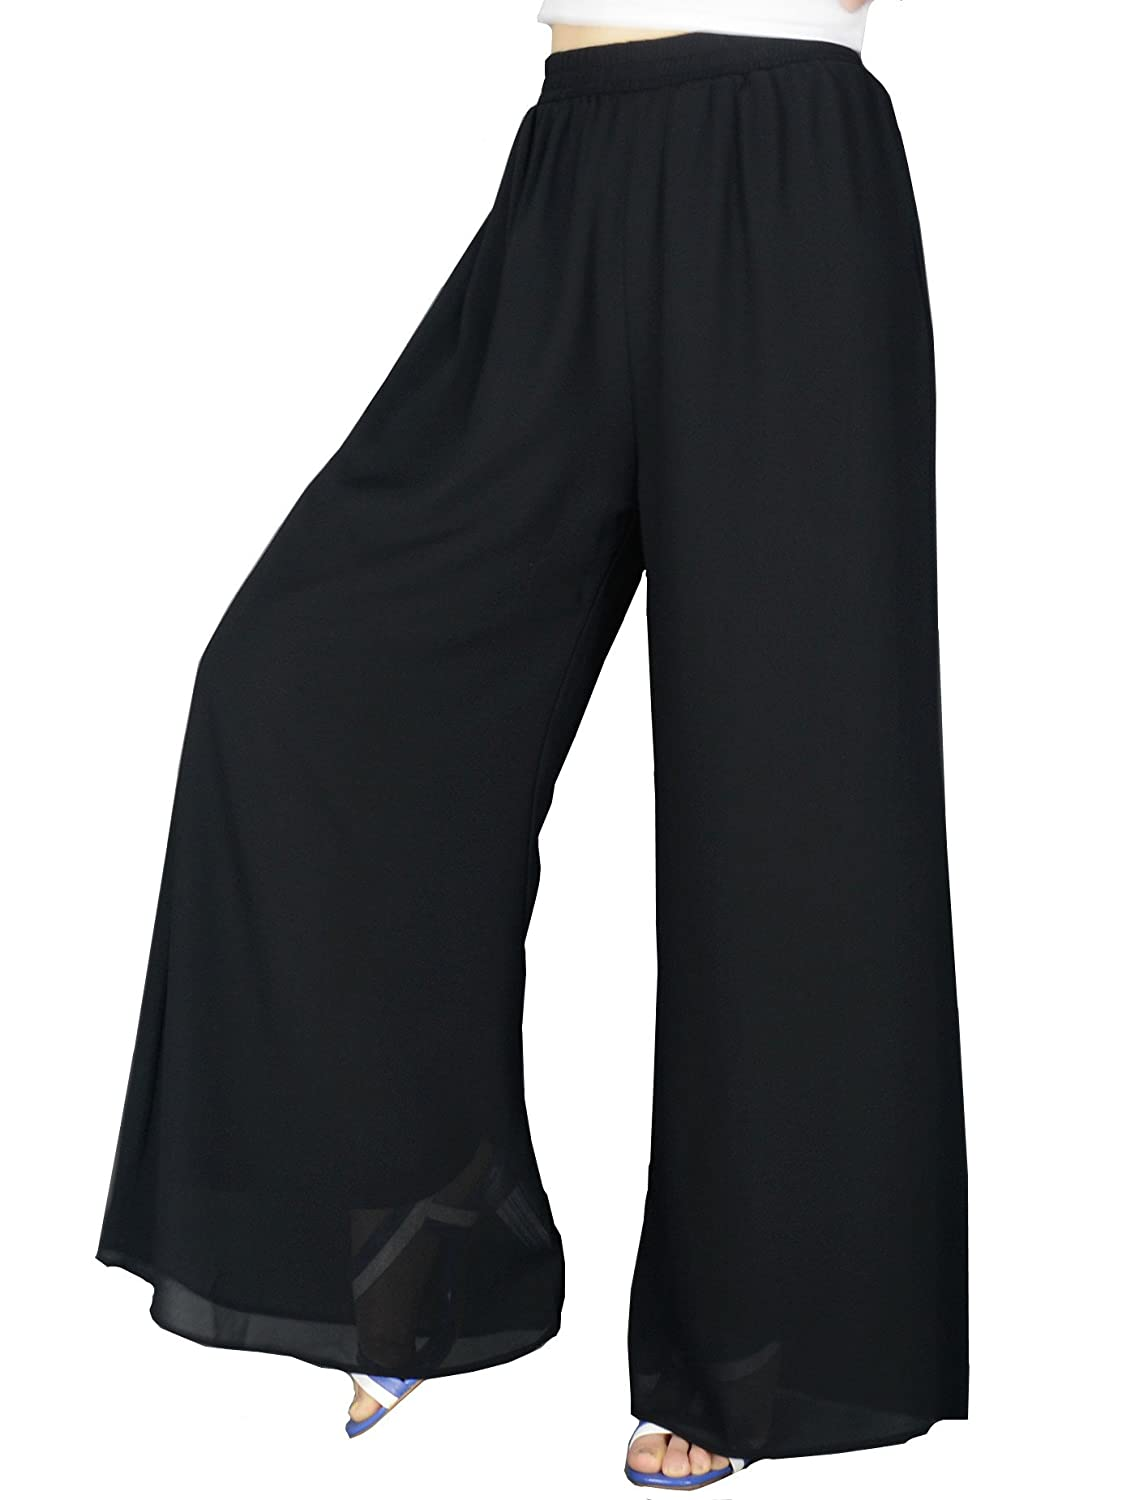 Vintage High Waisted Trousers, Sailor Pants, Jeans YSJERA Womens Chiffon Wide Leg Palazzo Pants Maxi Full Length Solid Gaucho Pants Culottes Trousers $21.99 AT vintagedancer.com